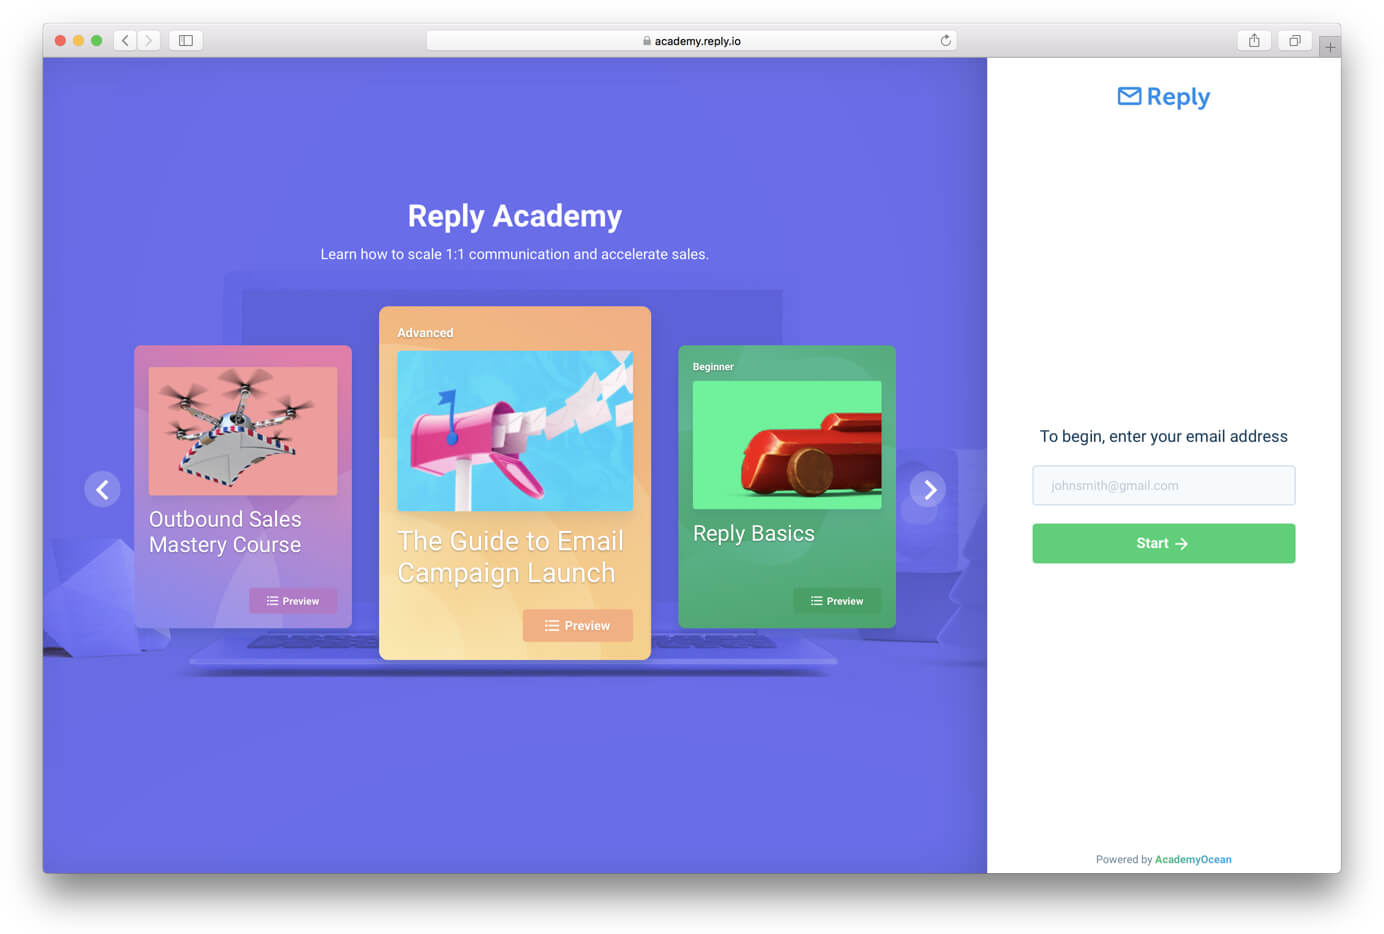 a screen of Academy Reply.io